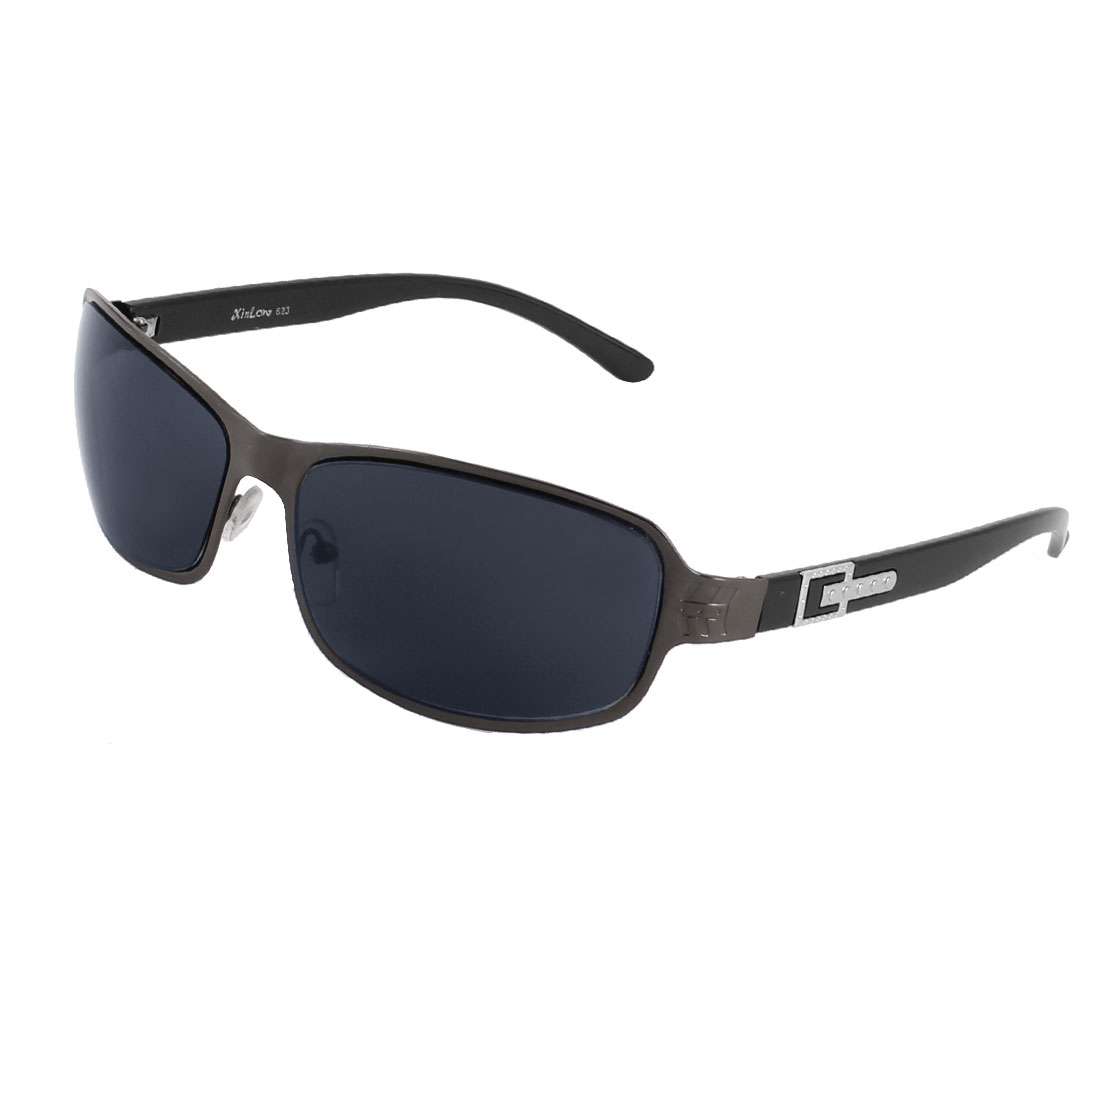 Man Outdoor Rectangle Tinted Color Lens Black Full Rims Sunglasses